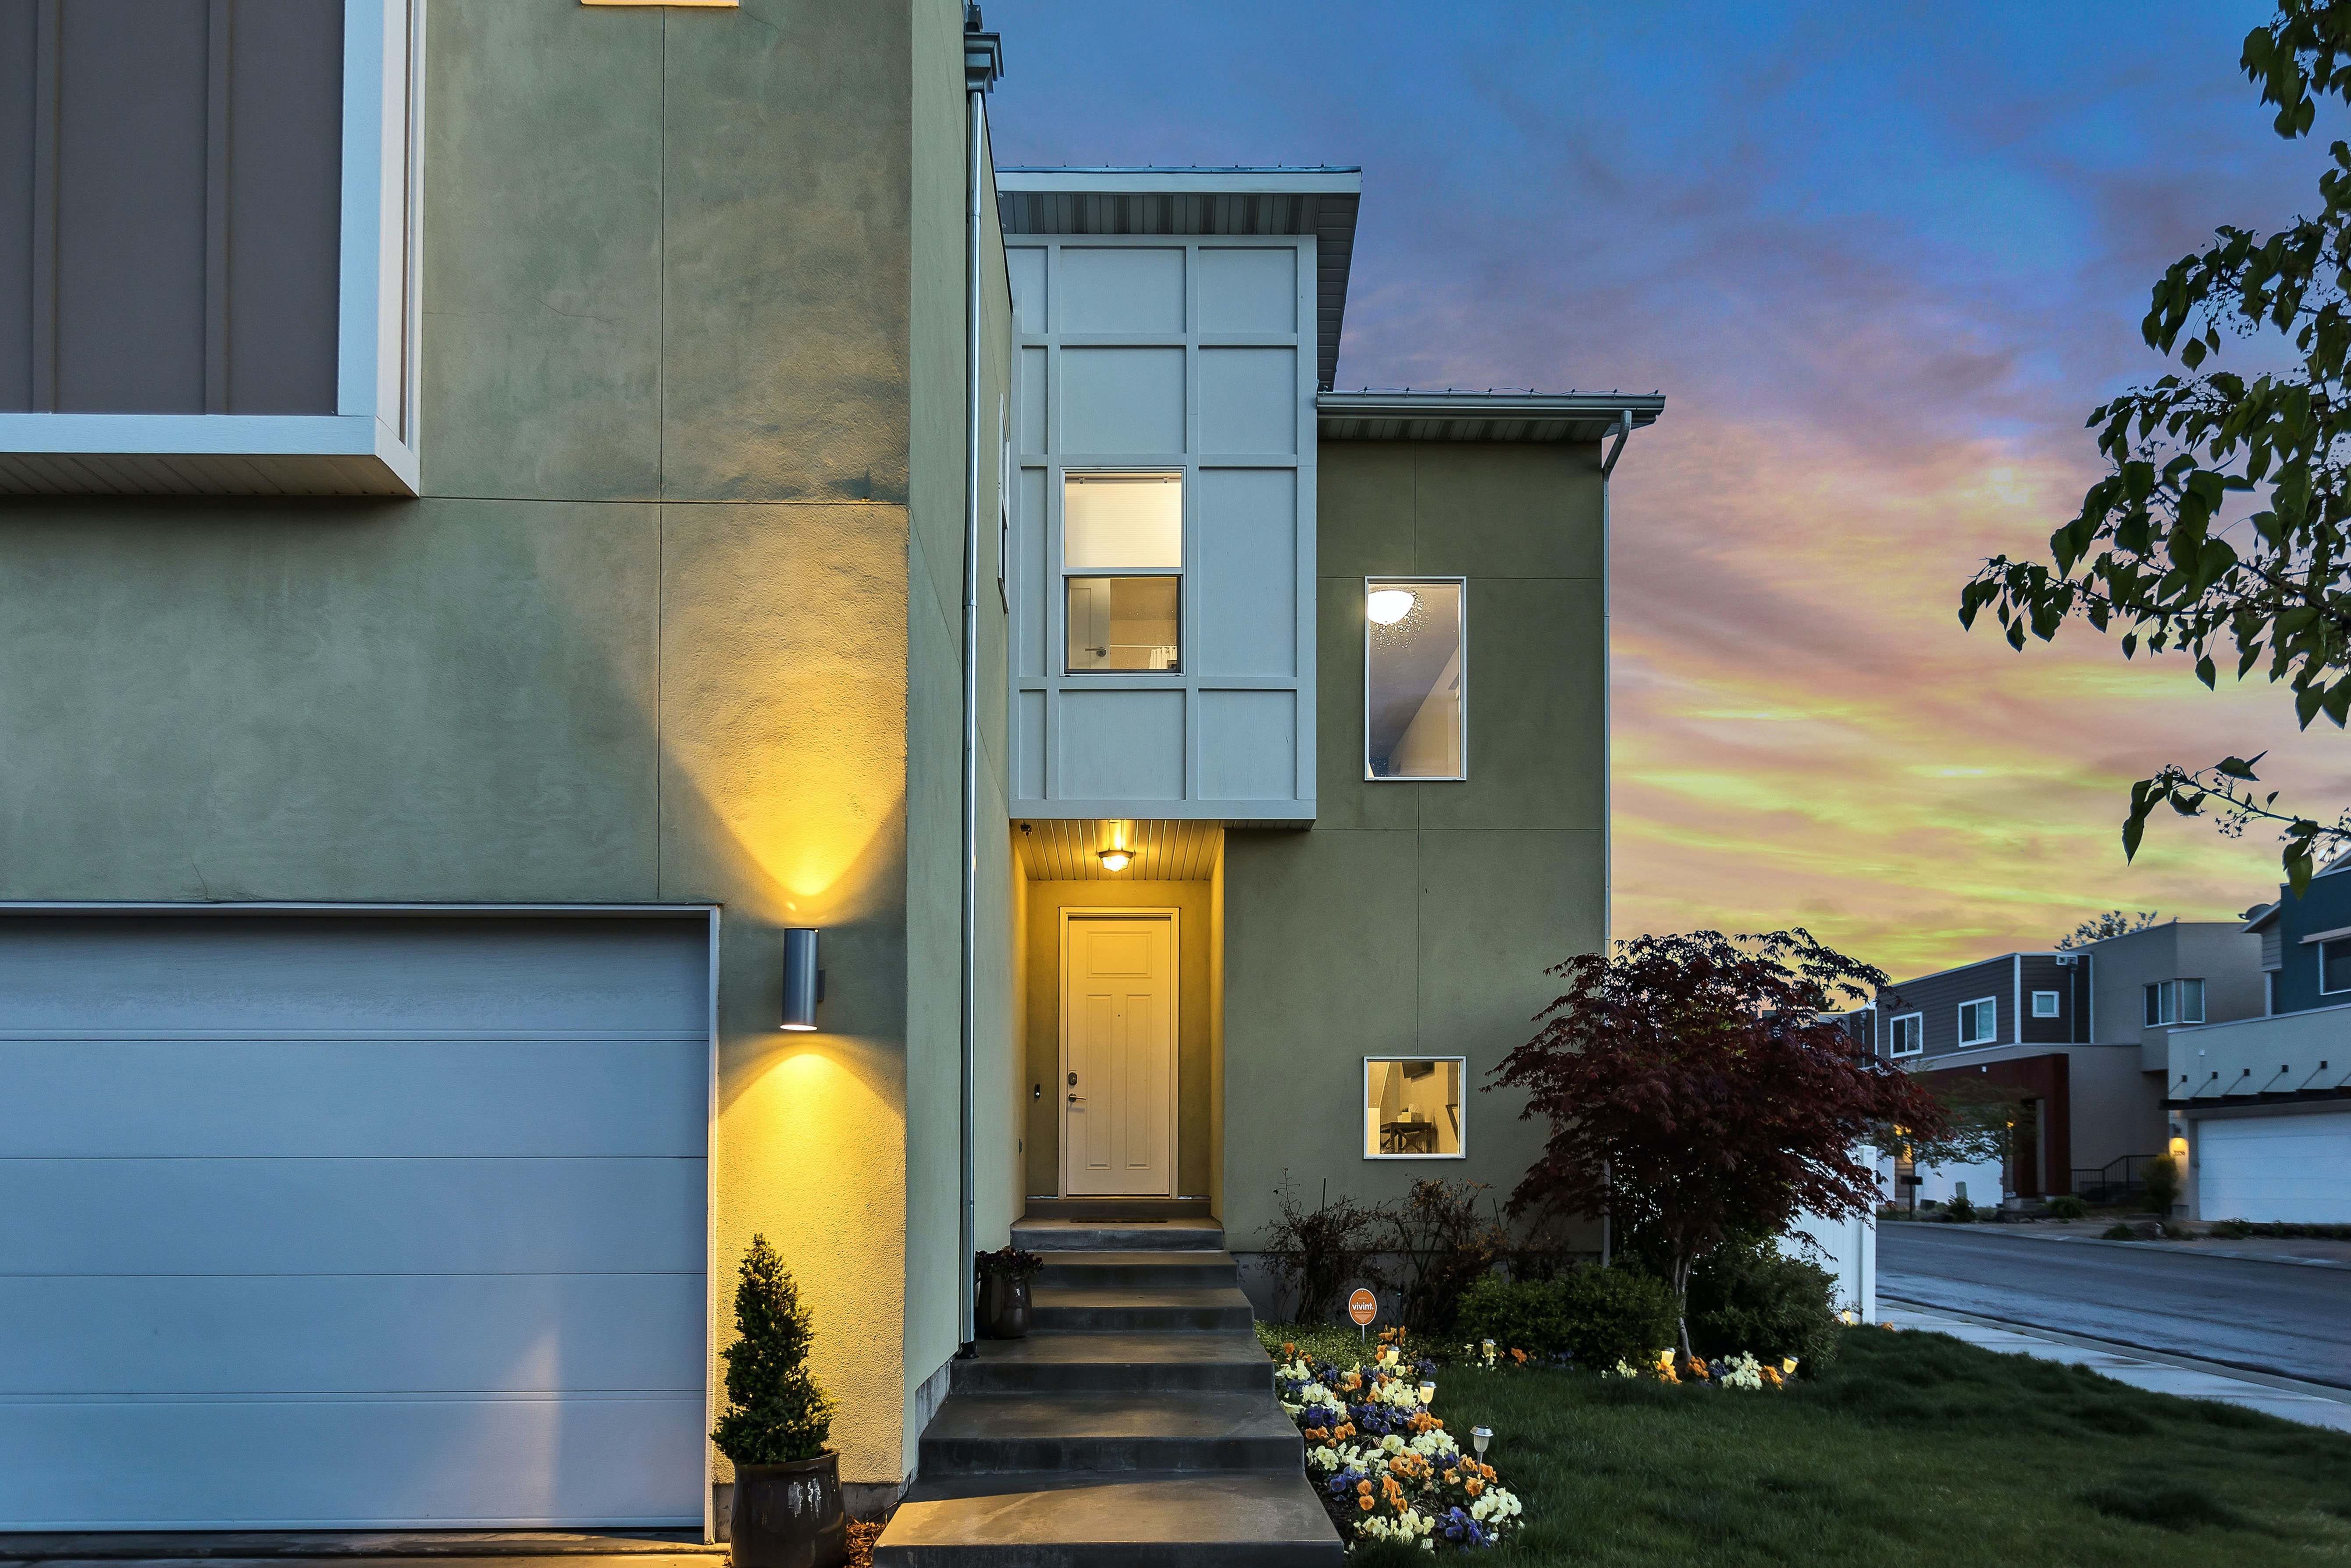 Townhouses at sunset